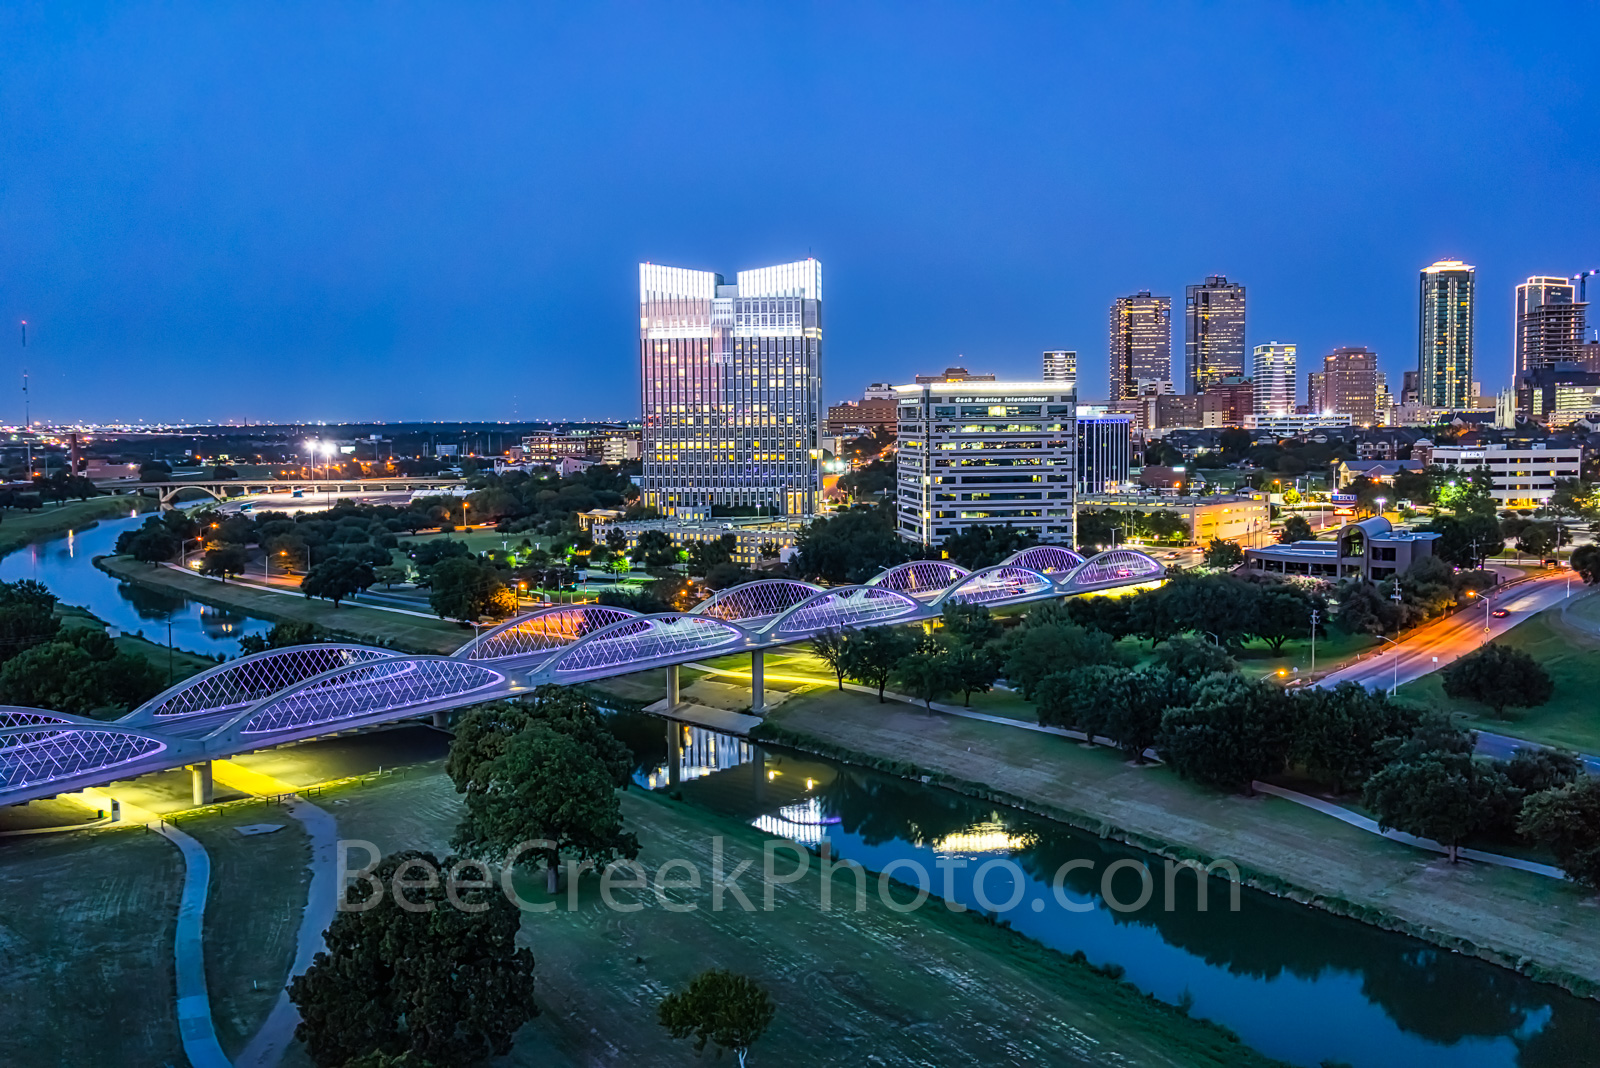 Fort Worth Skyline at Twilight- Another aerial capture of the Fort Worth skyline at twilight. Love the purple lights...